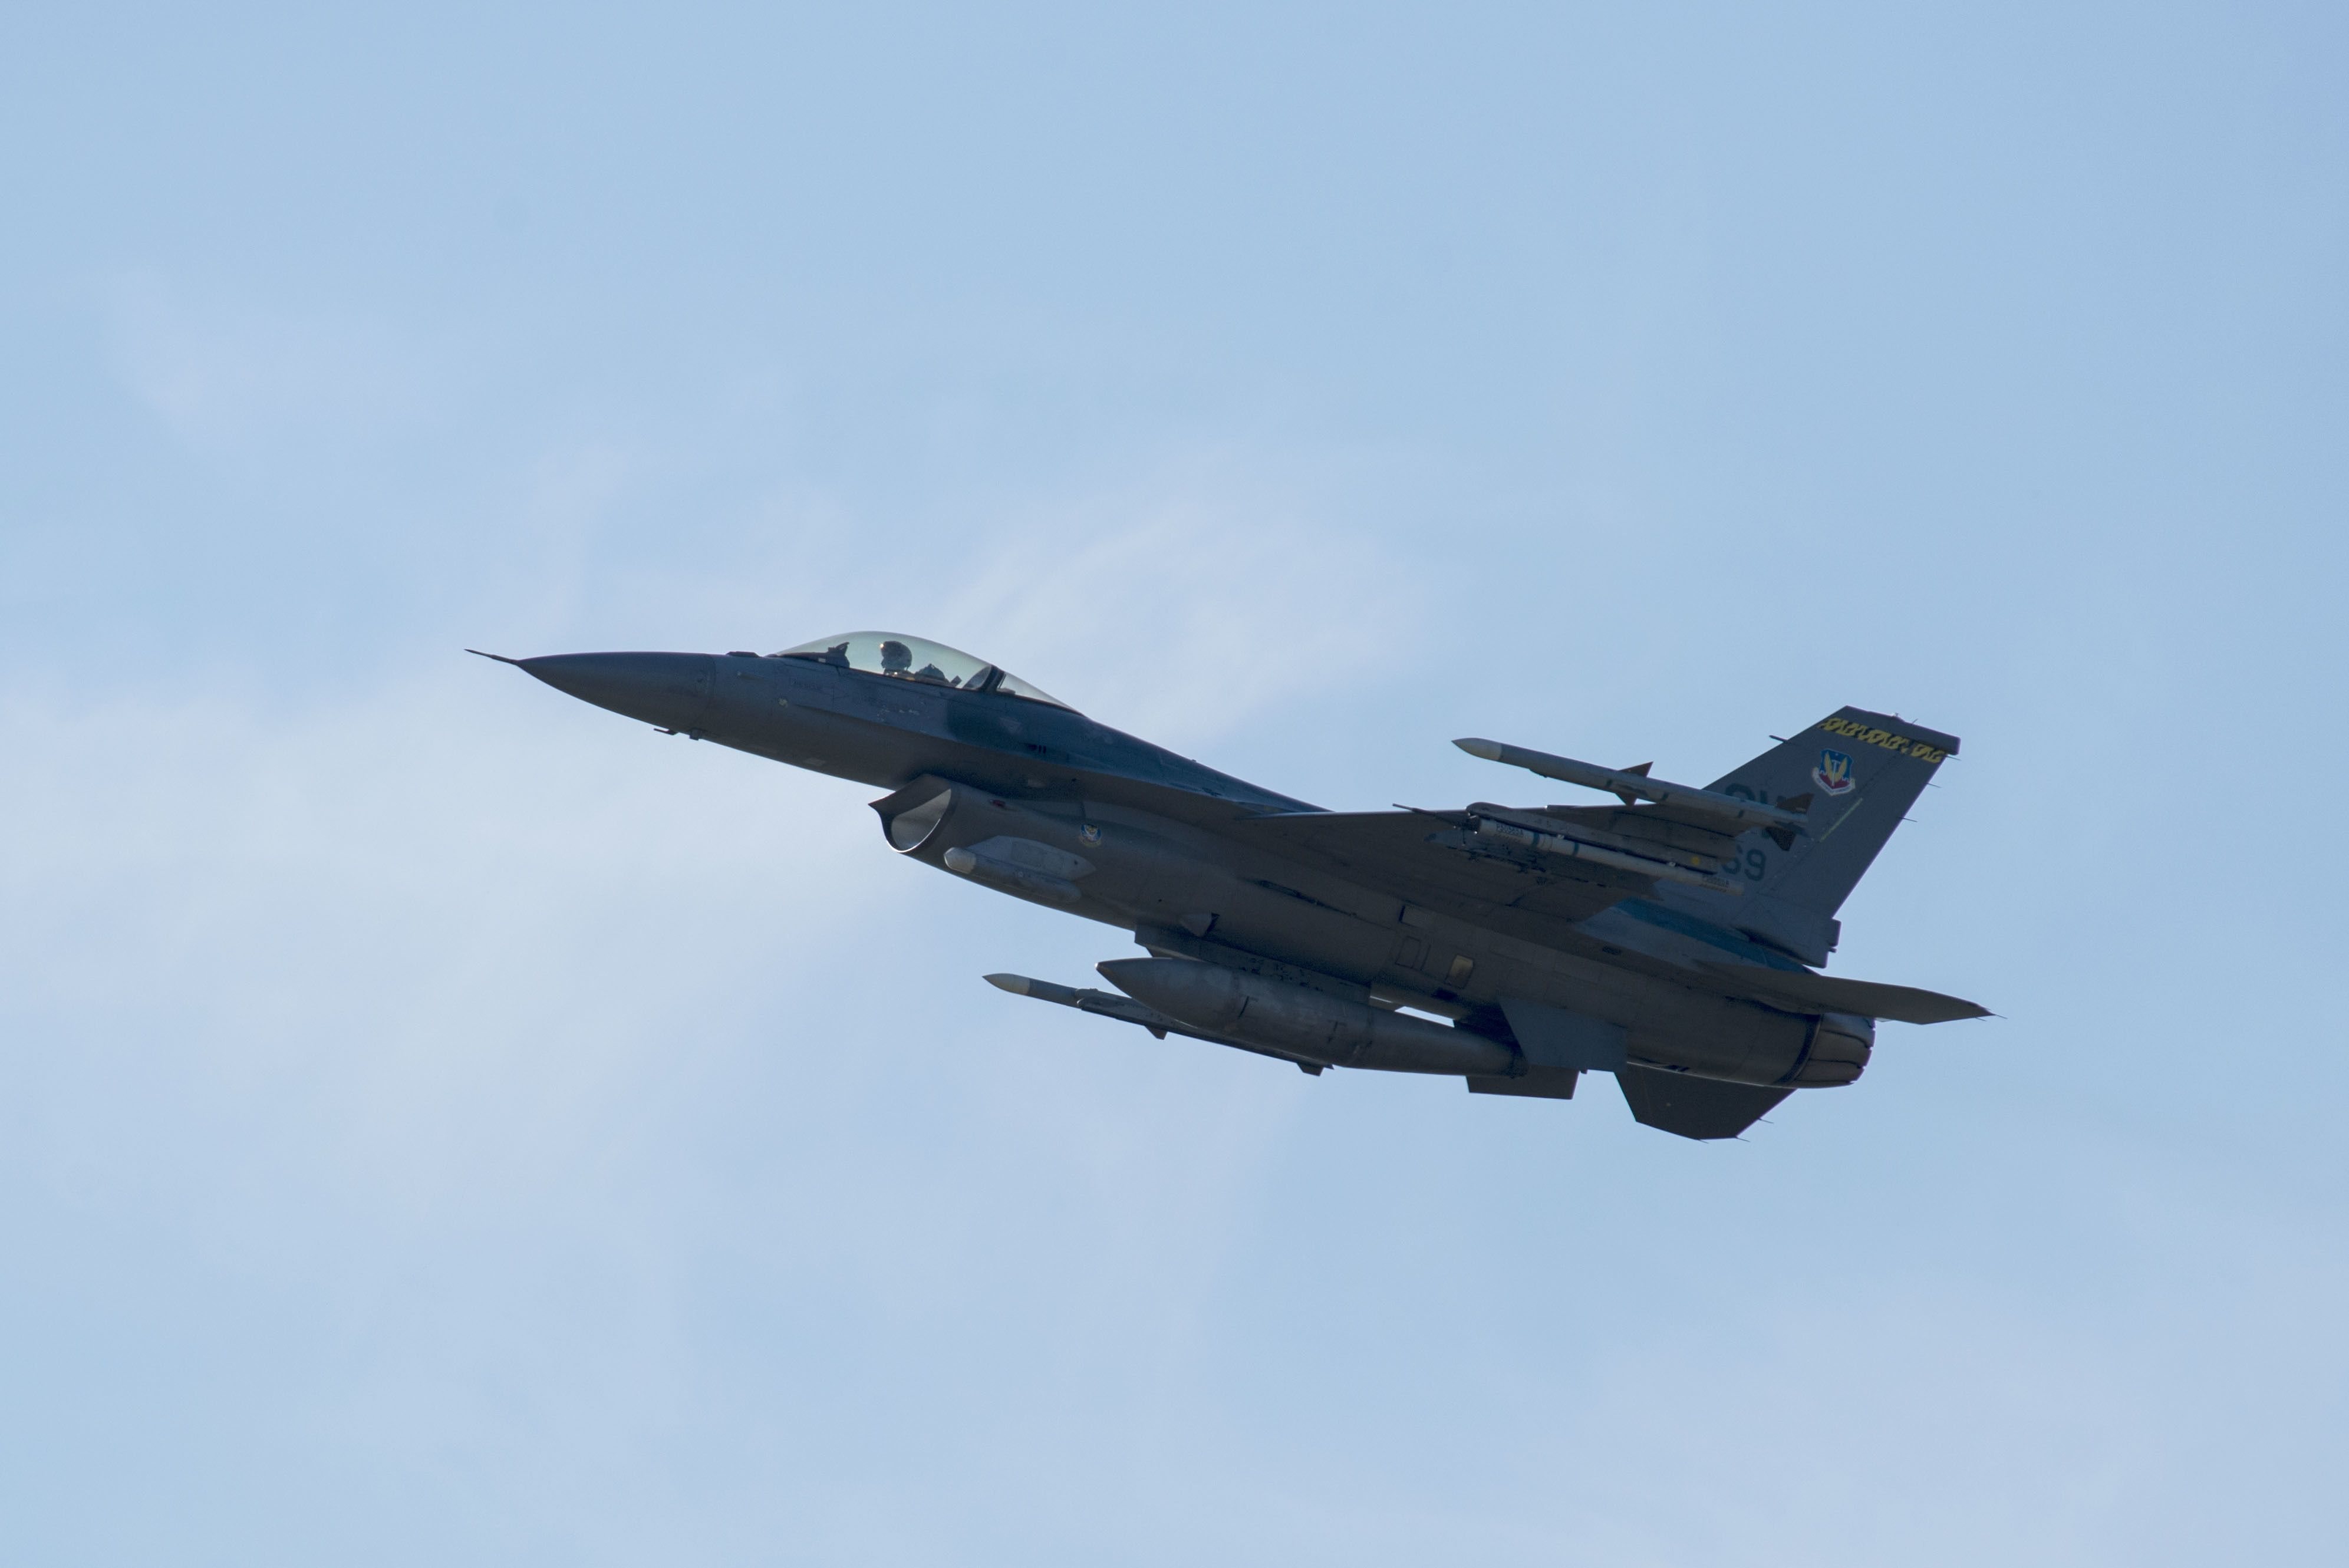 F-16 Fighter Pilot Dies After Crash in South Carolina